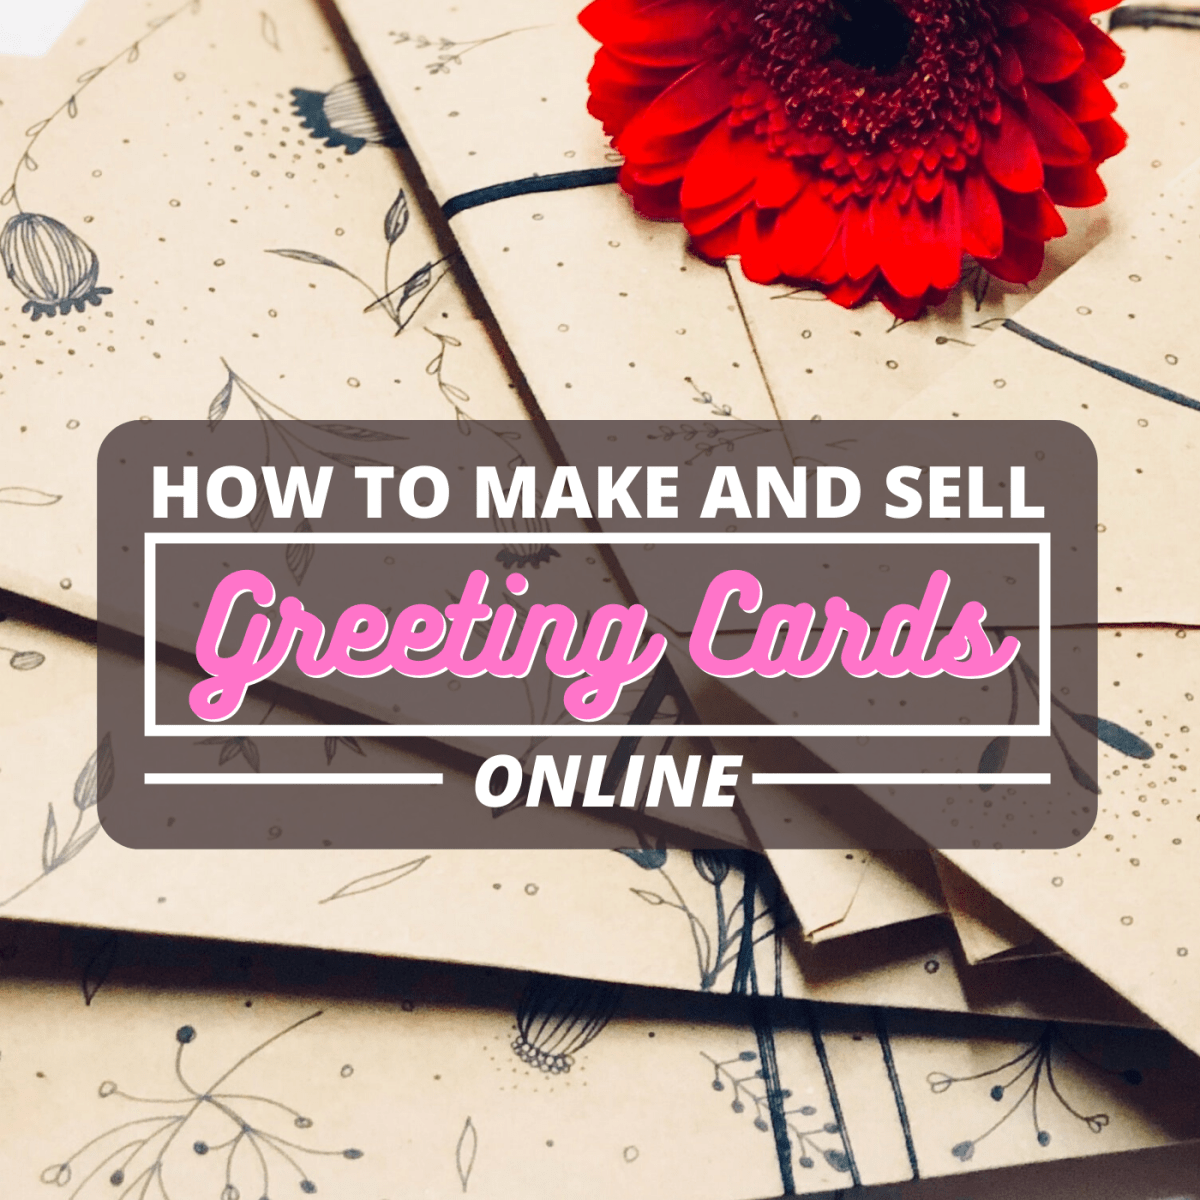 3 Ways to Sell Greeting Cards Online - ToughNickel - Money